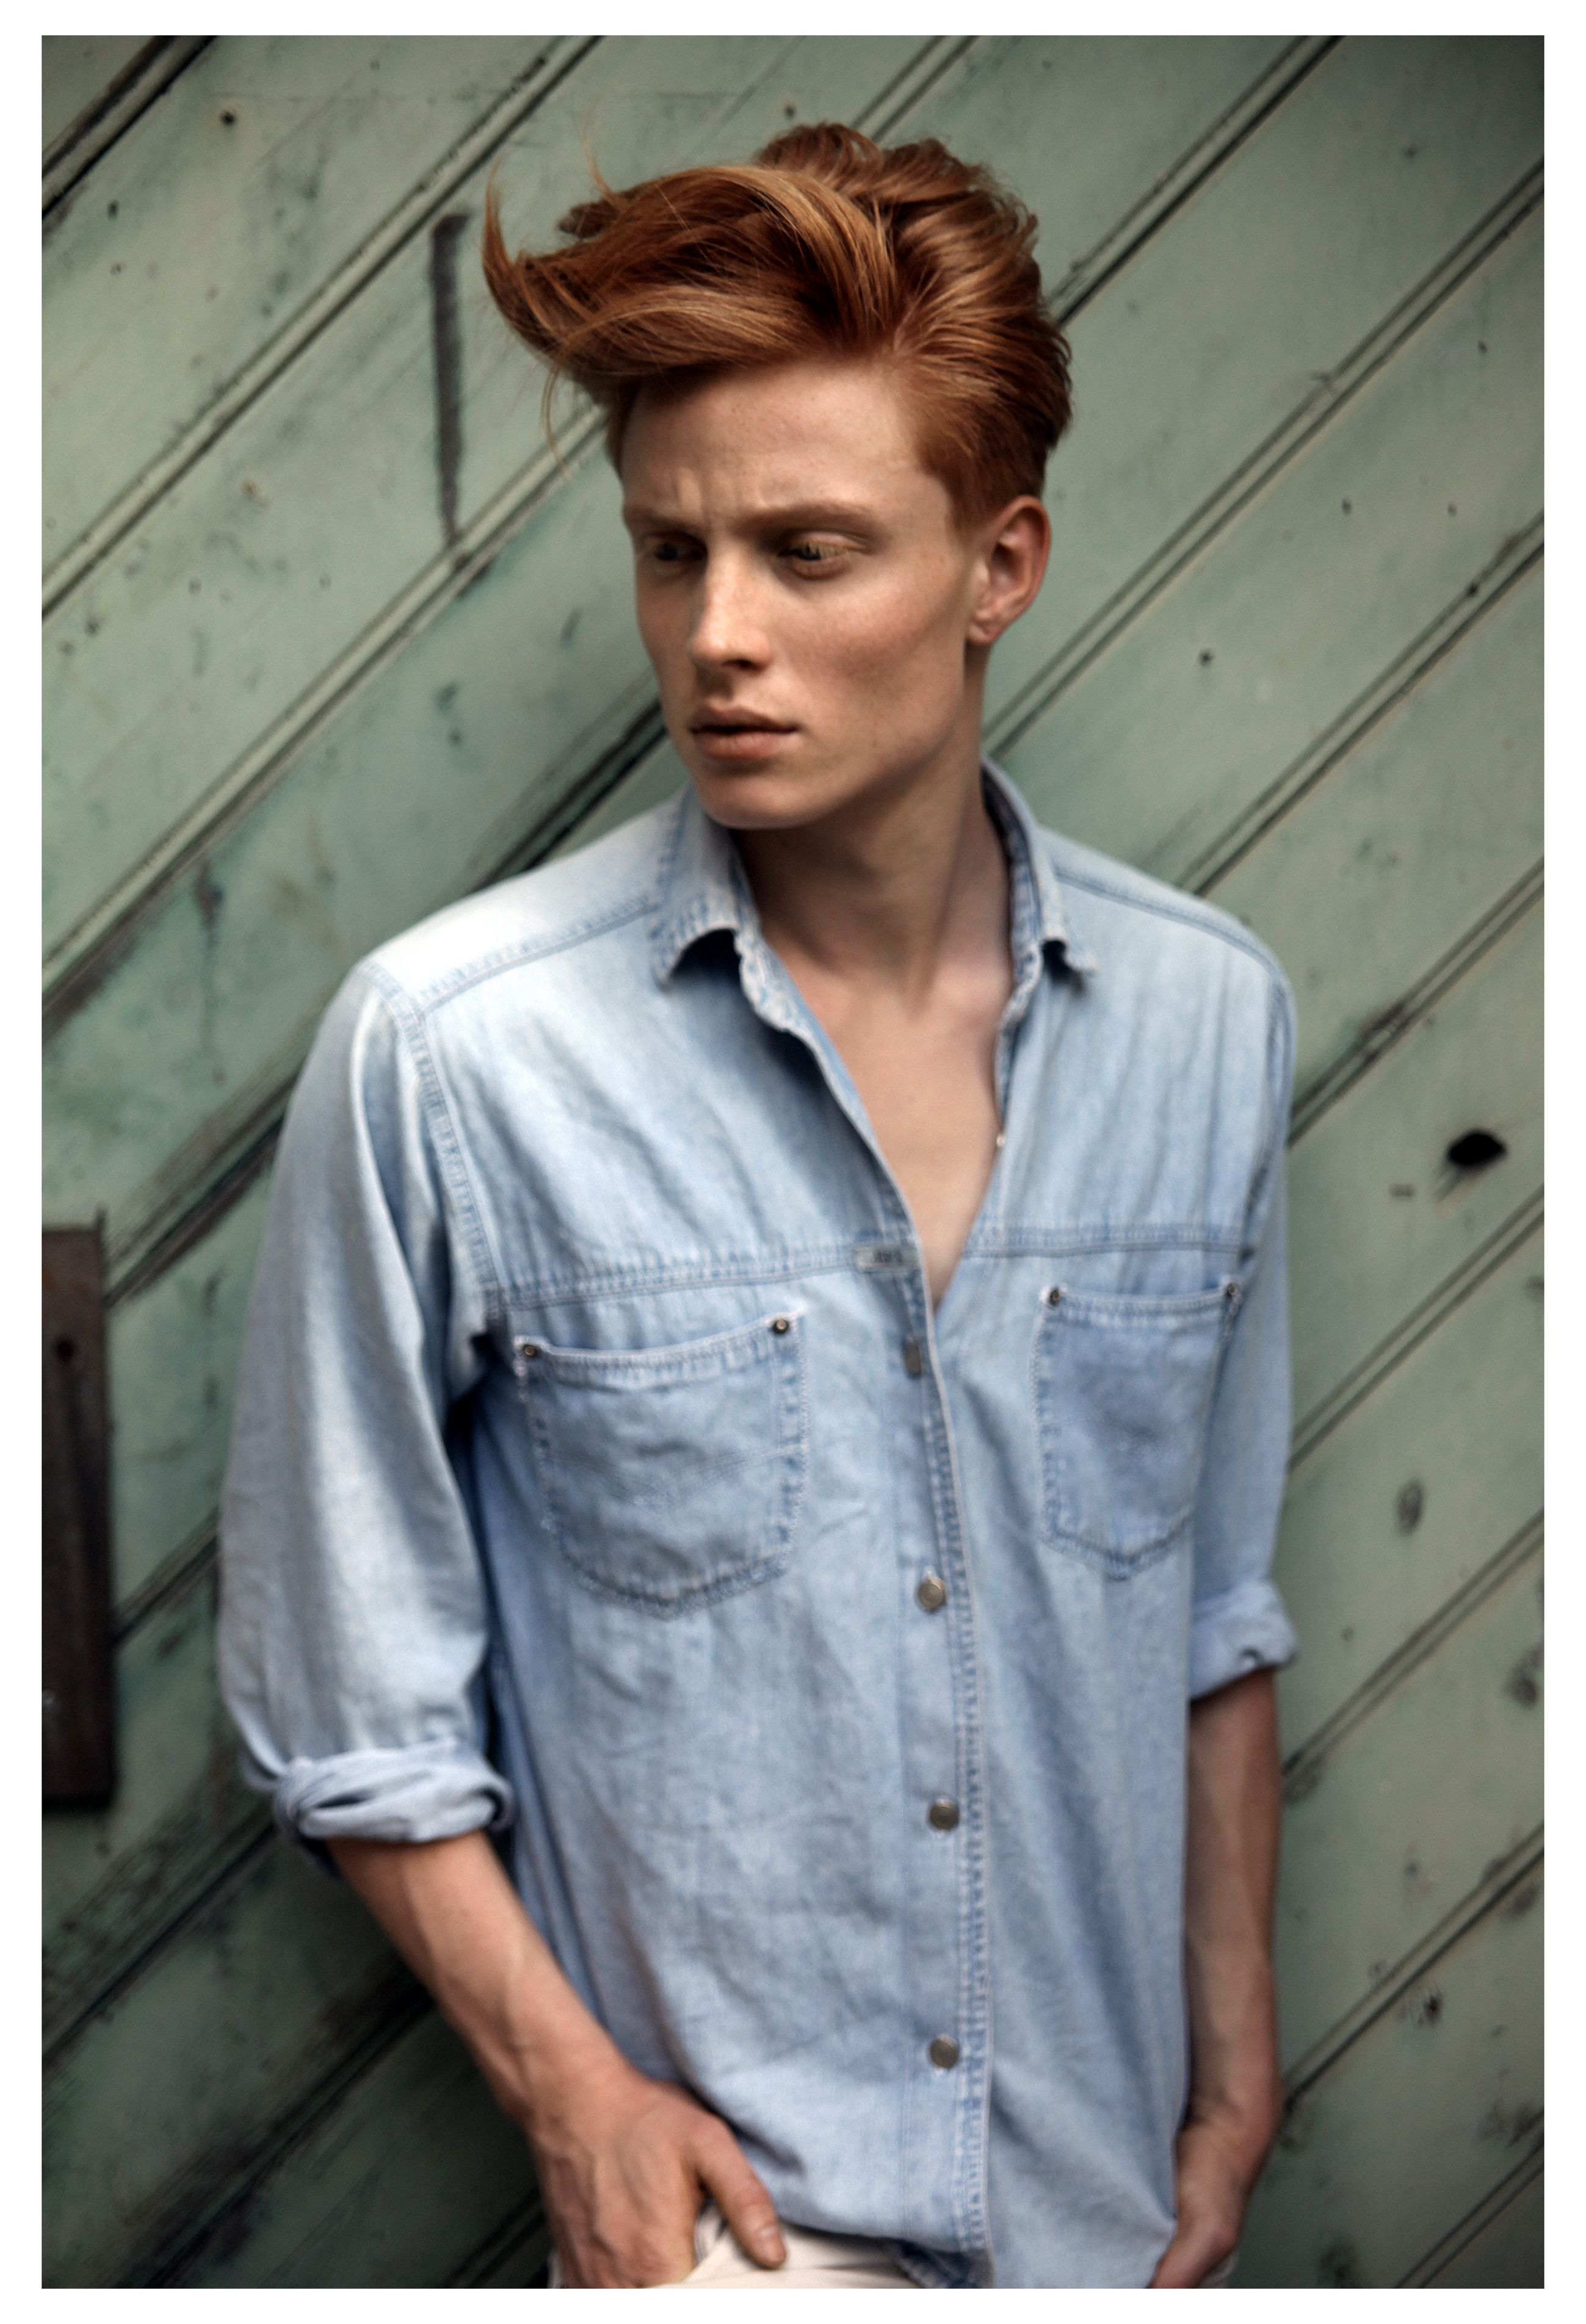 1000+ images about Men with Red Hair on Pinterest | Hair ...